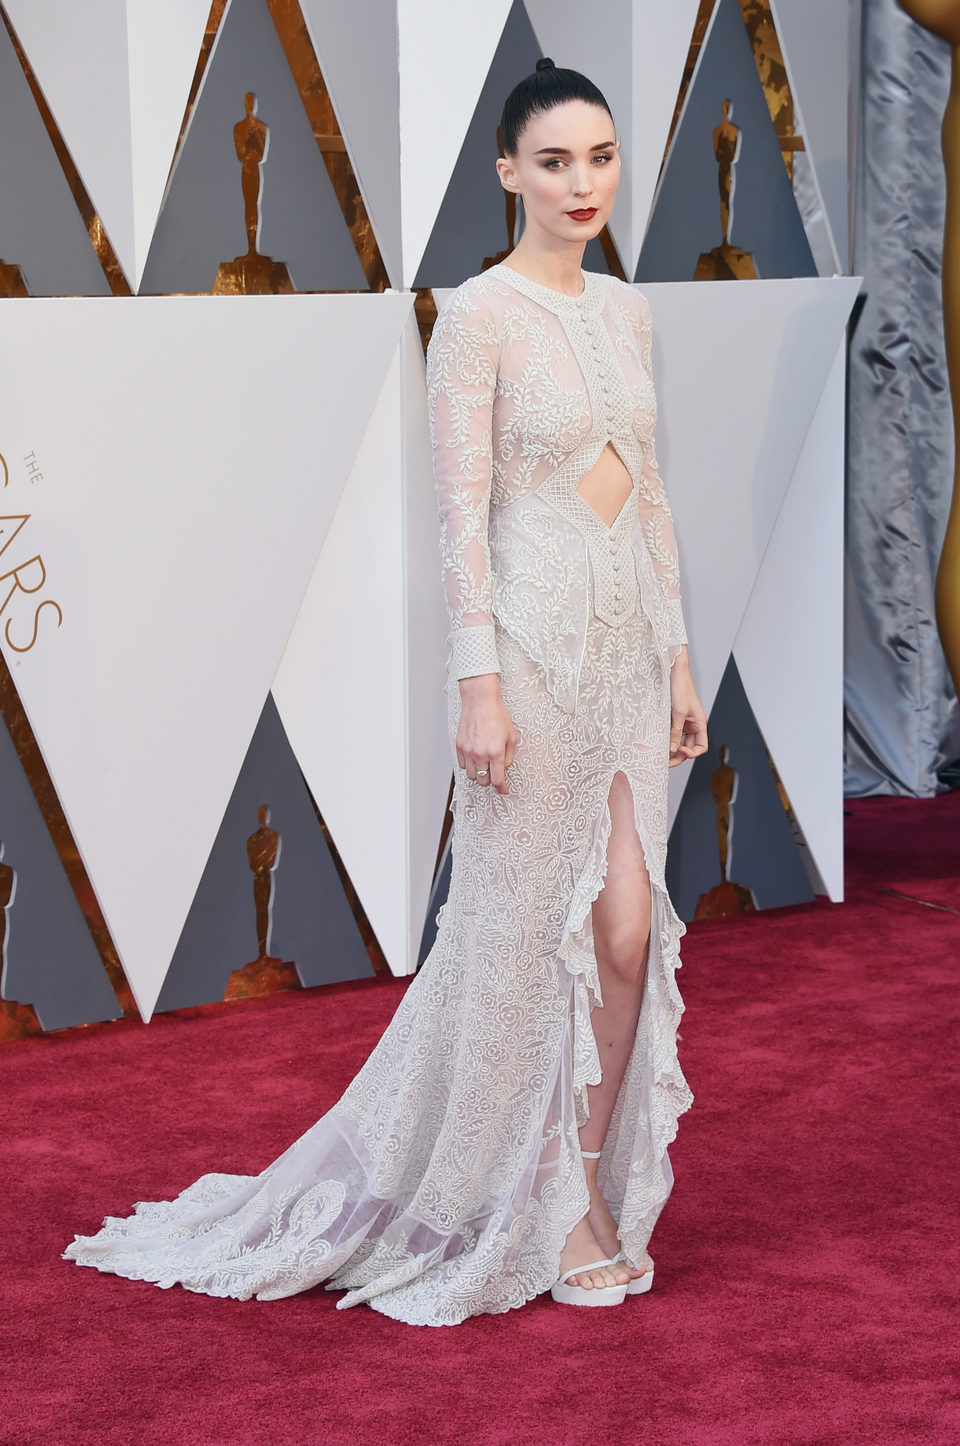 Rooney Mara at the Oscars 2016 red carpet